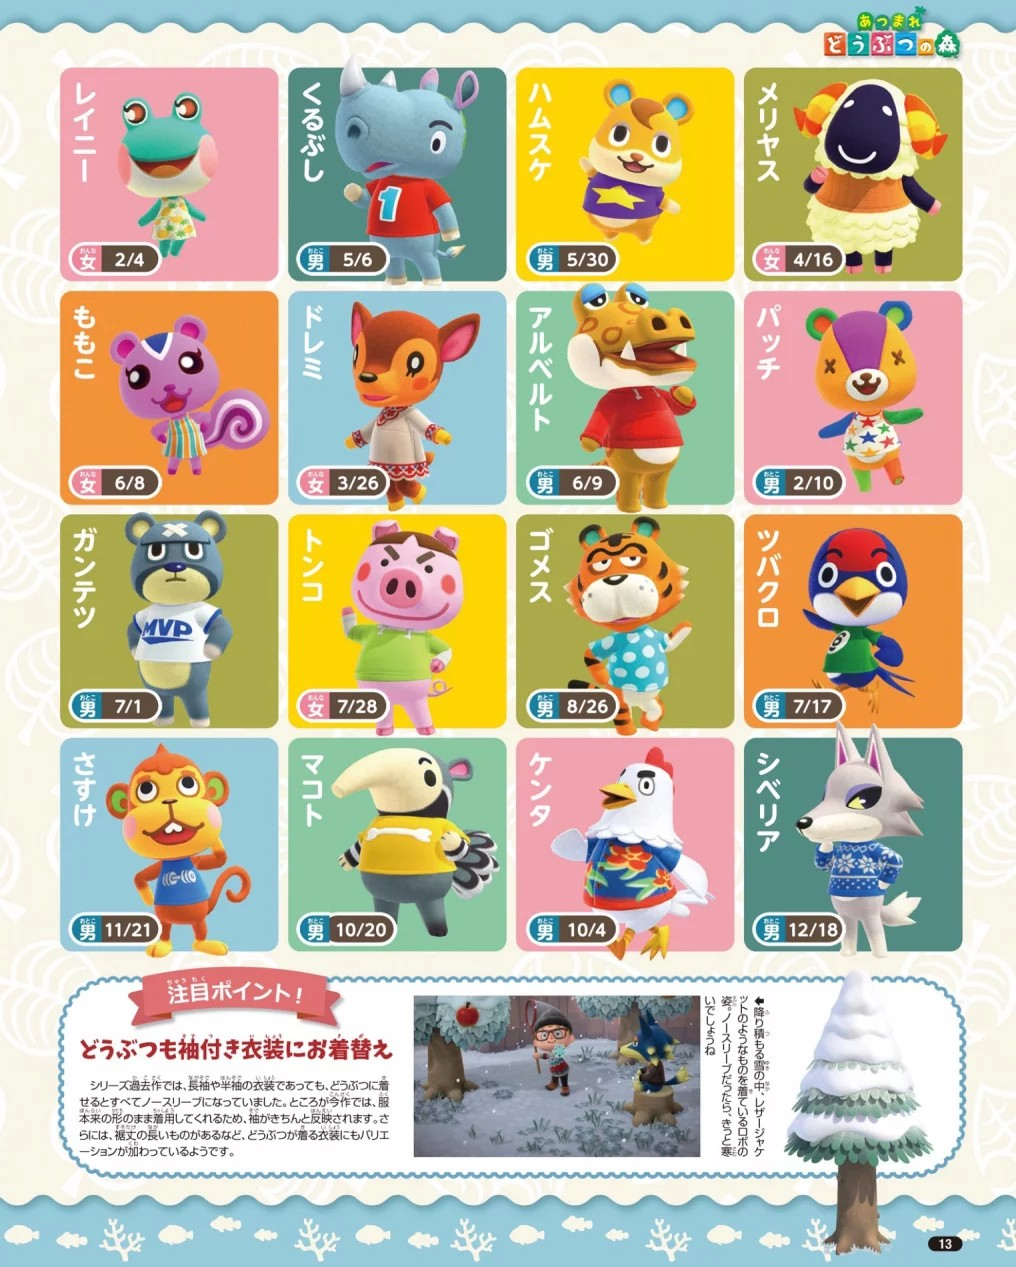 More Animal Crossing New Horizons Art Released Shows Villagers